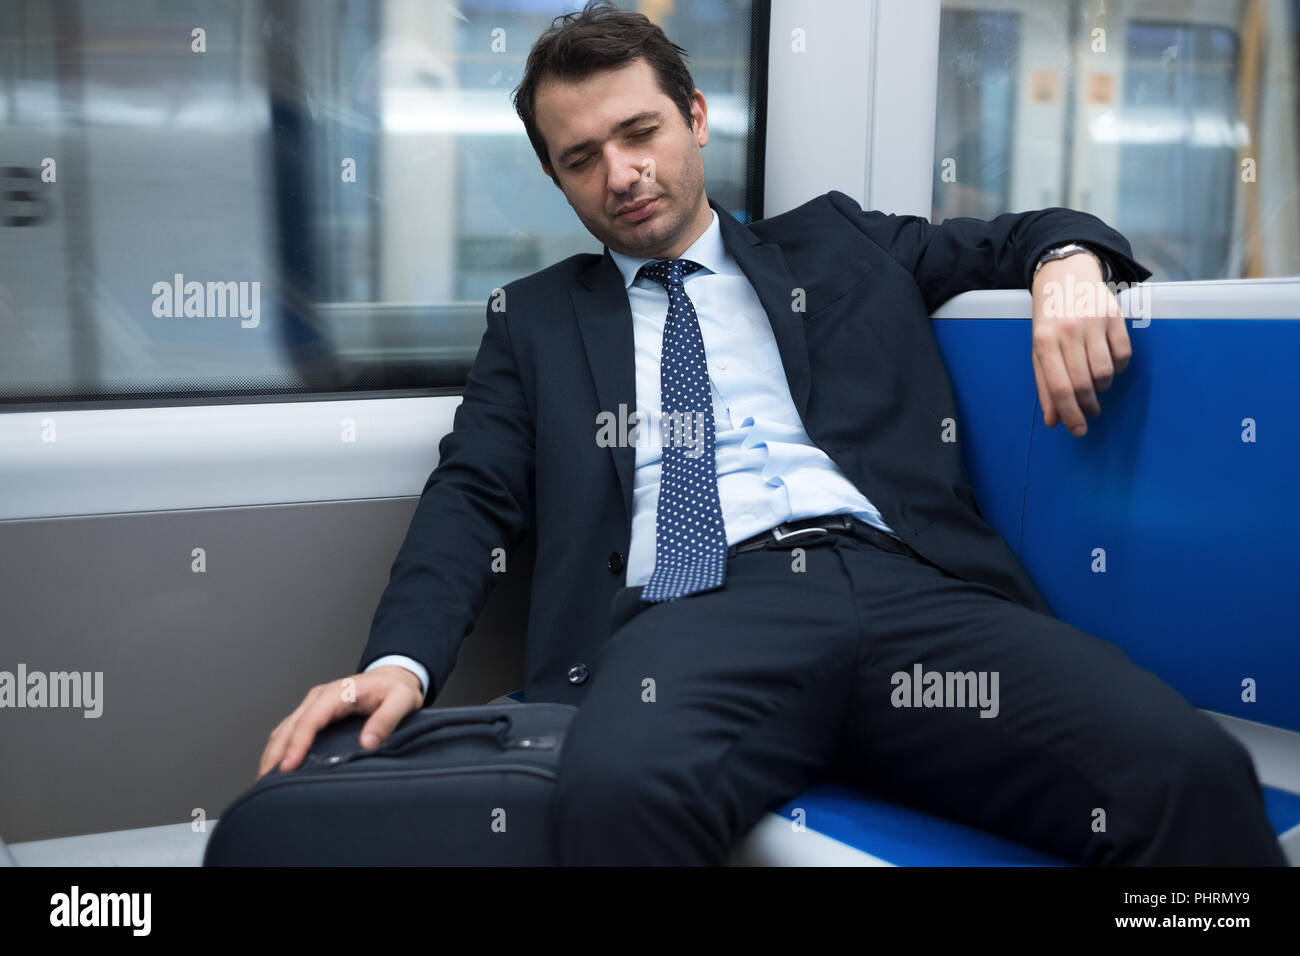 Tired businessman sleeping while going to work - Stock Image